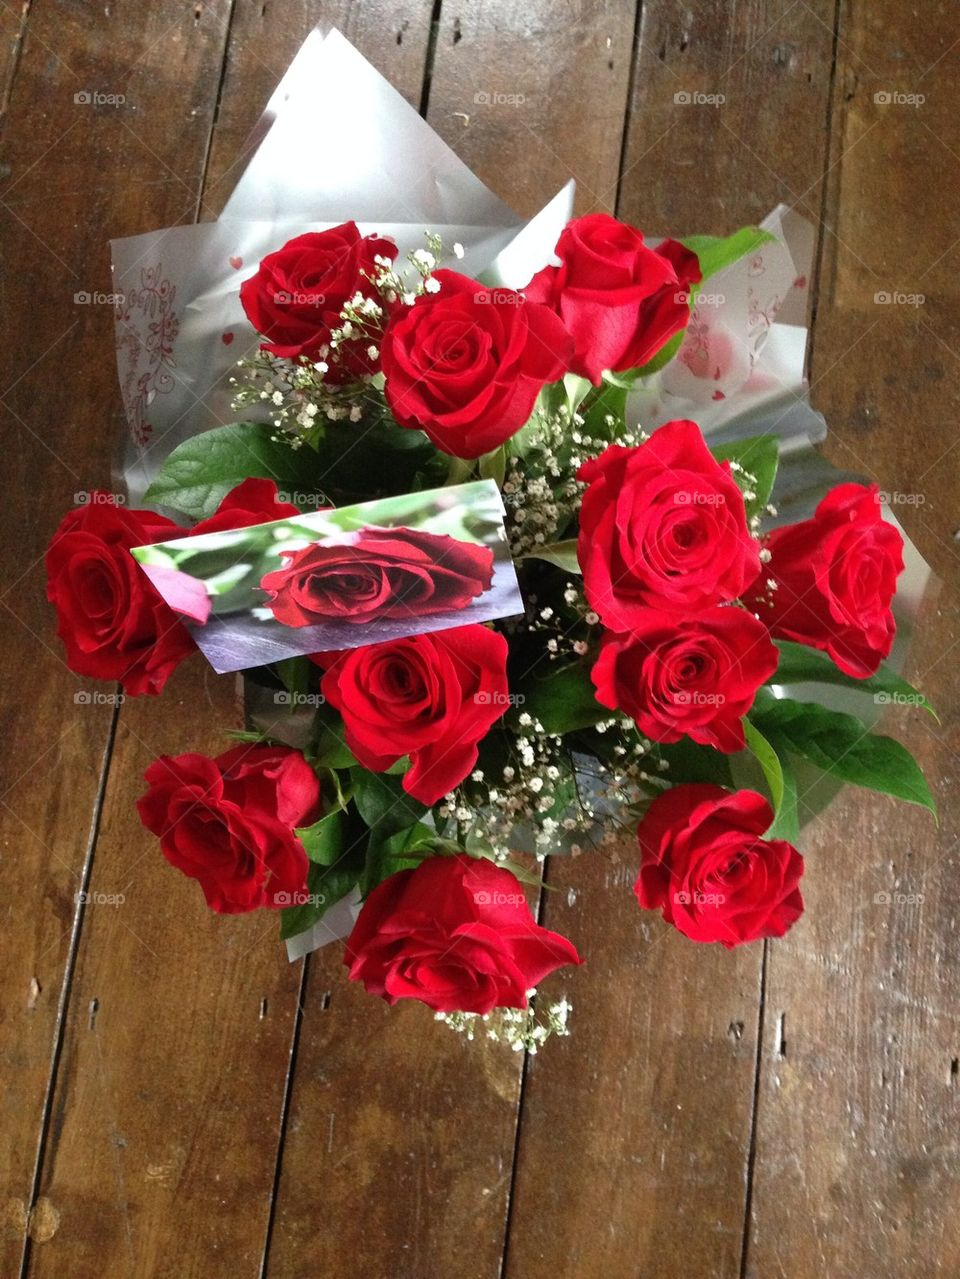 High angle view of red rose bouquet